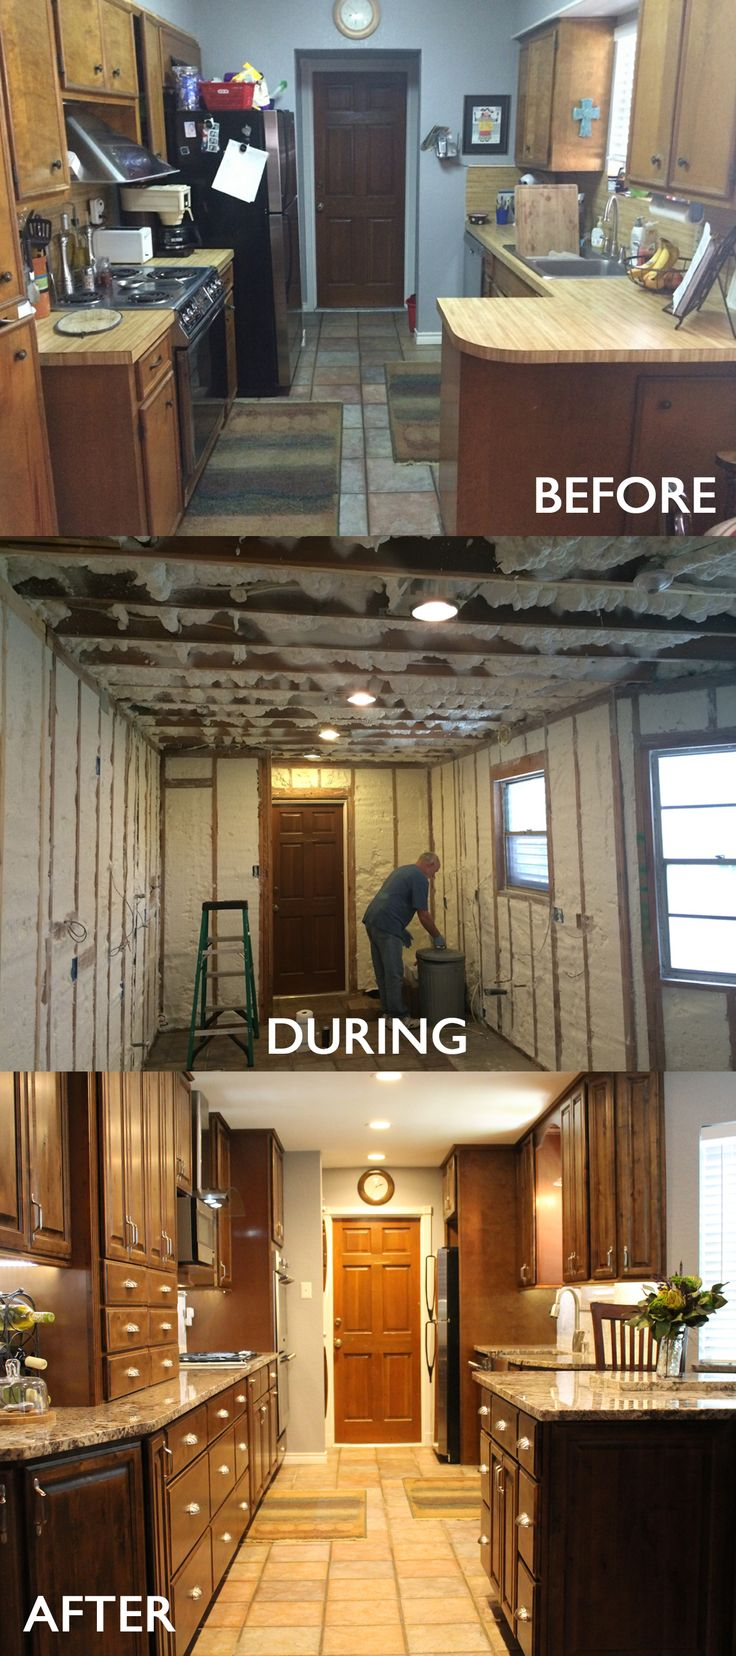 remodel before n after mobile home kitchen remodel Kitchen remodel before and after Mobile Home